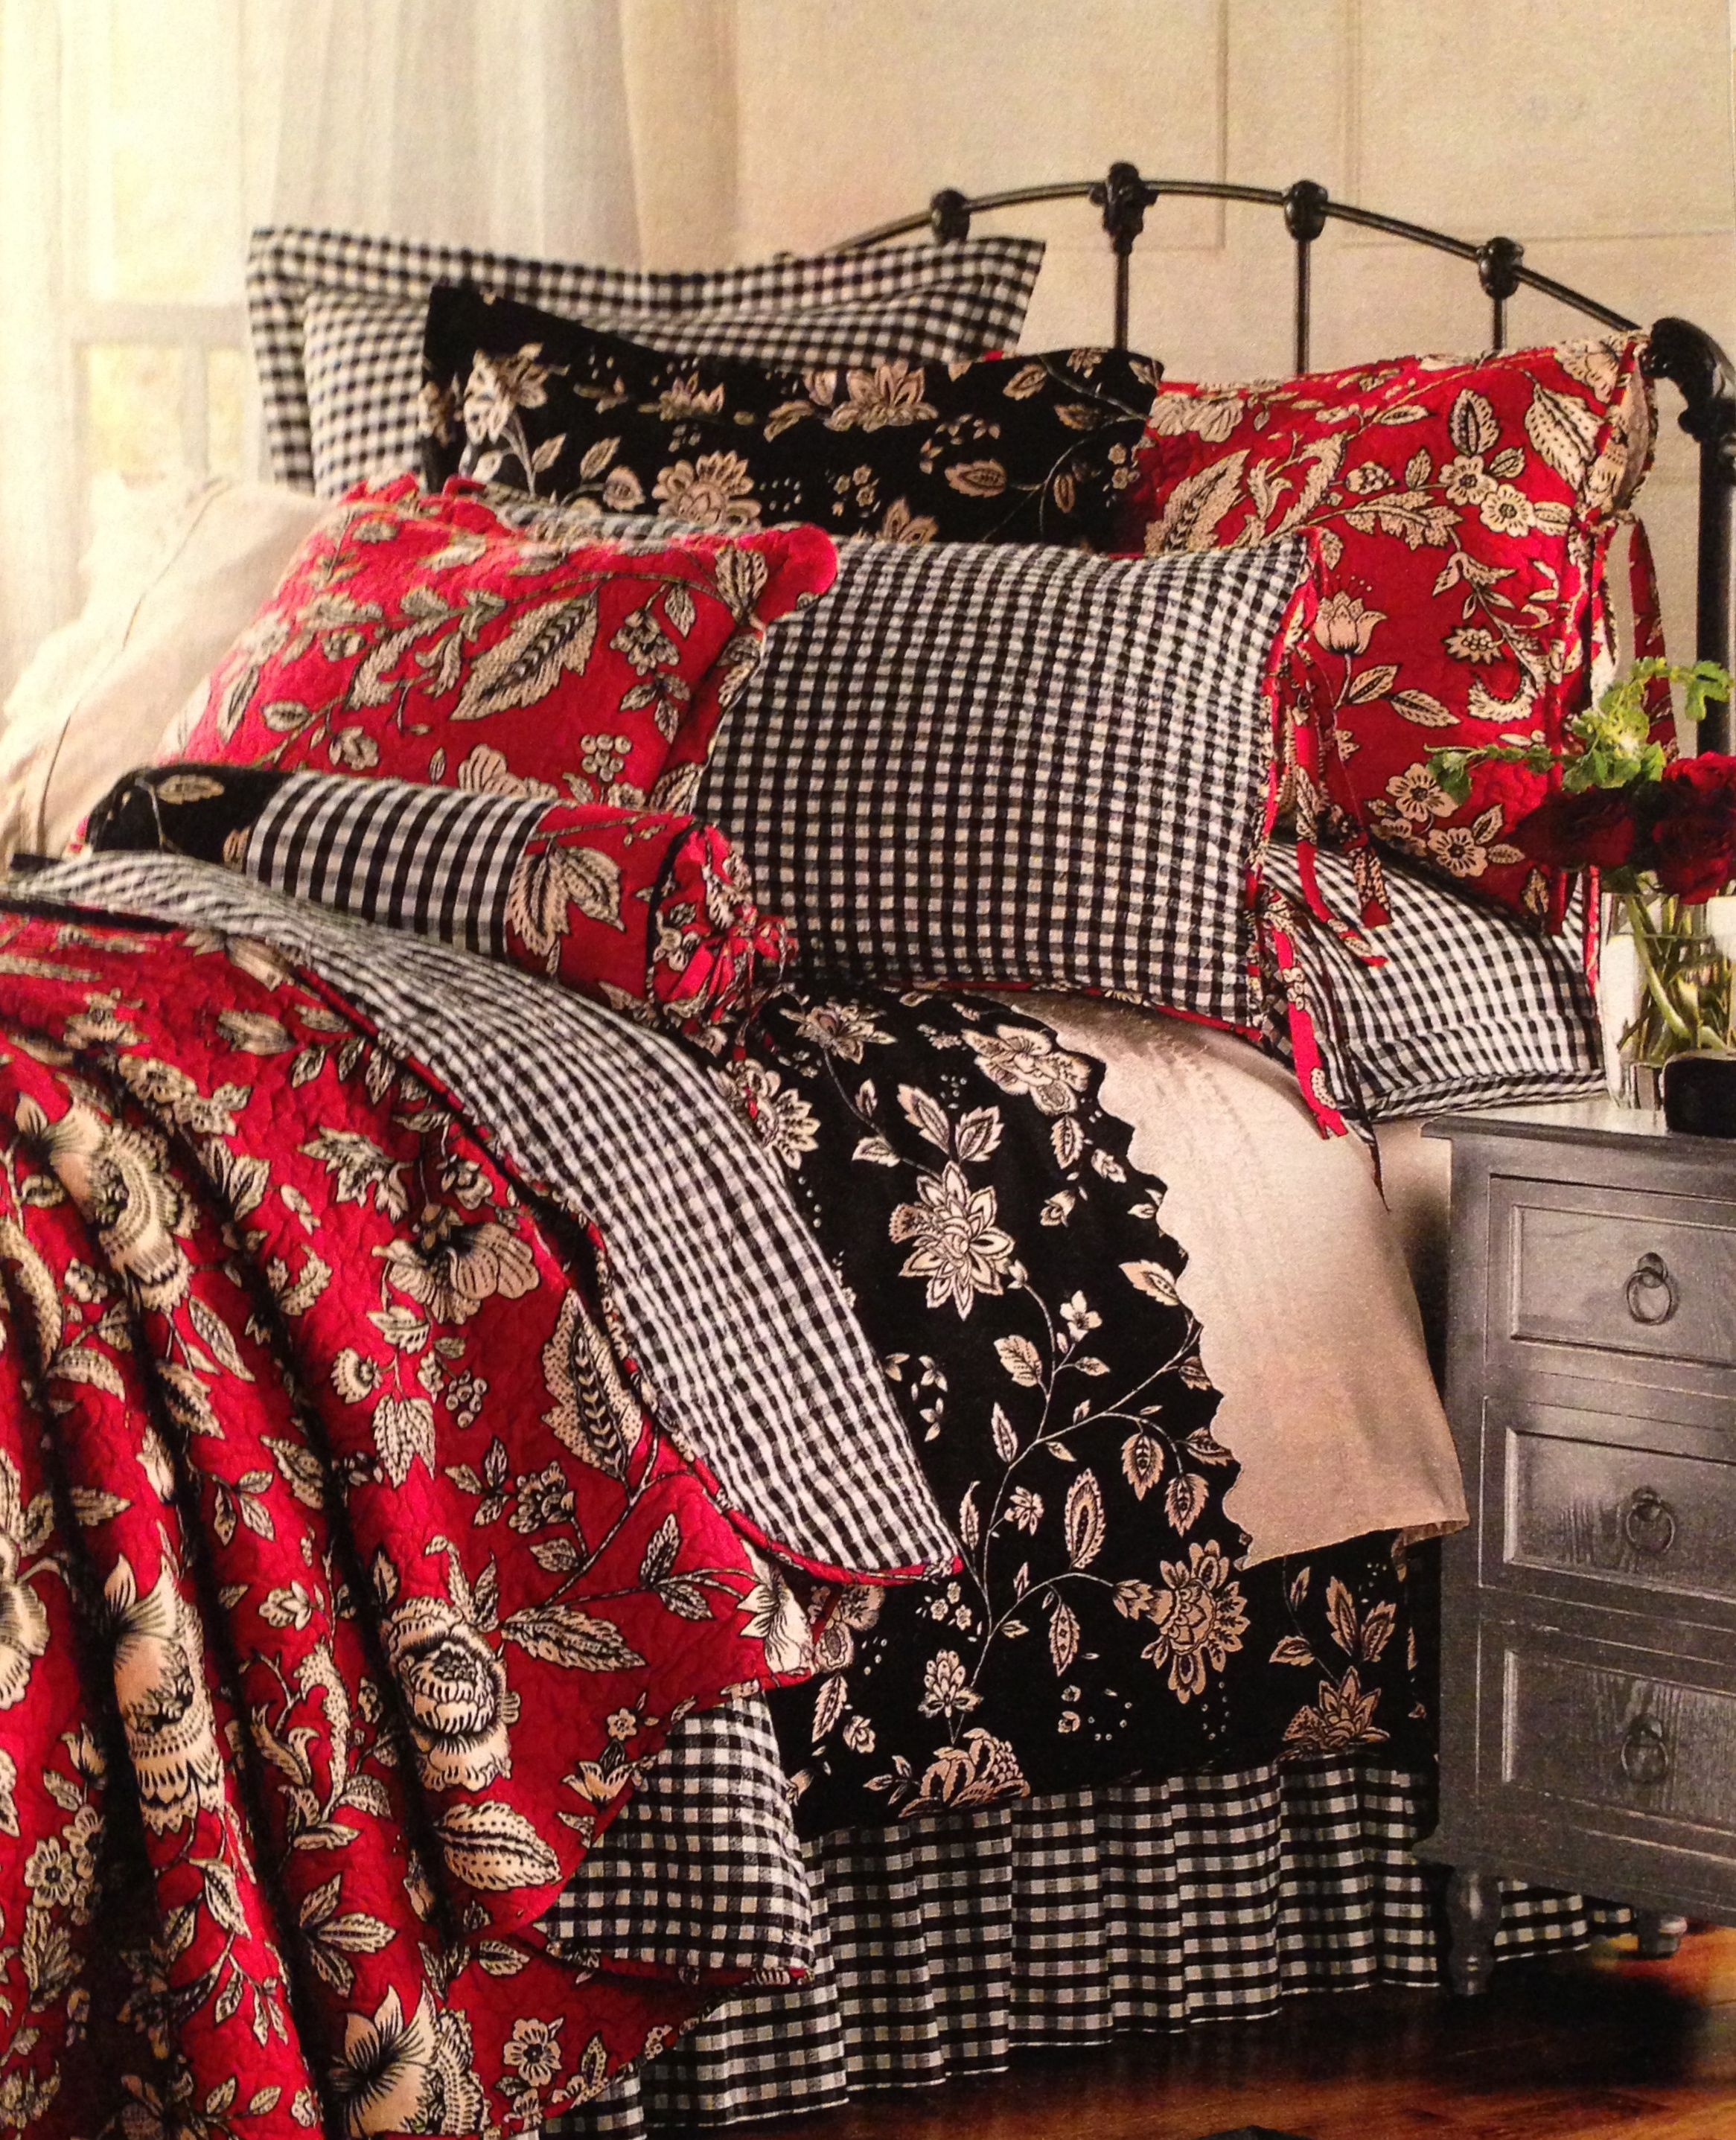 Would Love This In The Downstairs Bedroom White Beadboard Walls Paint Headboard And Dresser Black Fl Red Gingham Check Bedding